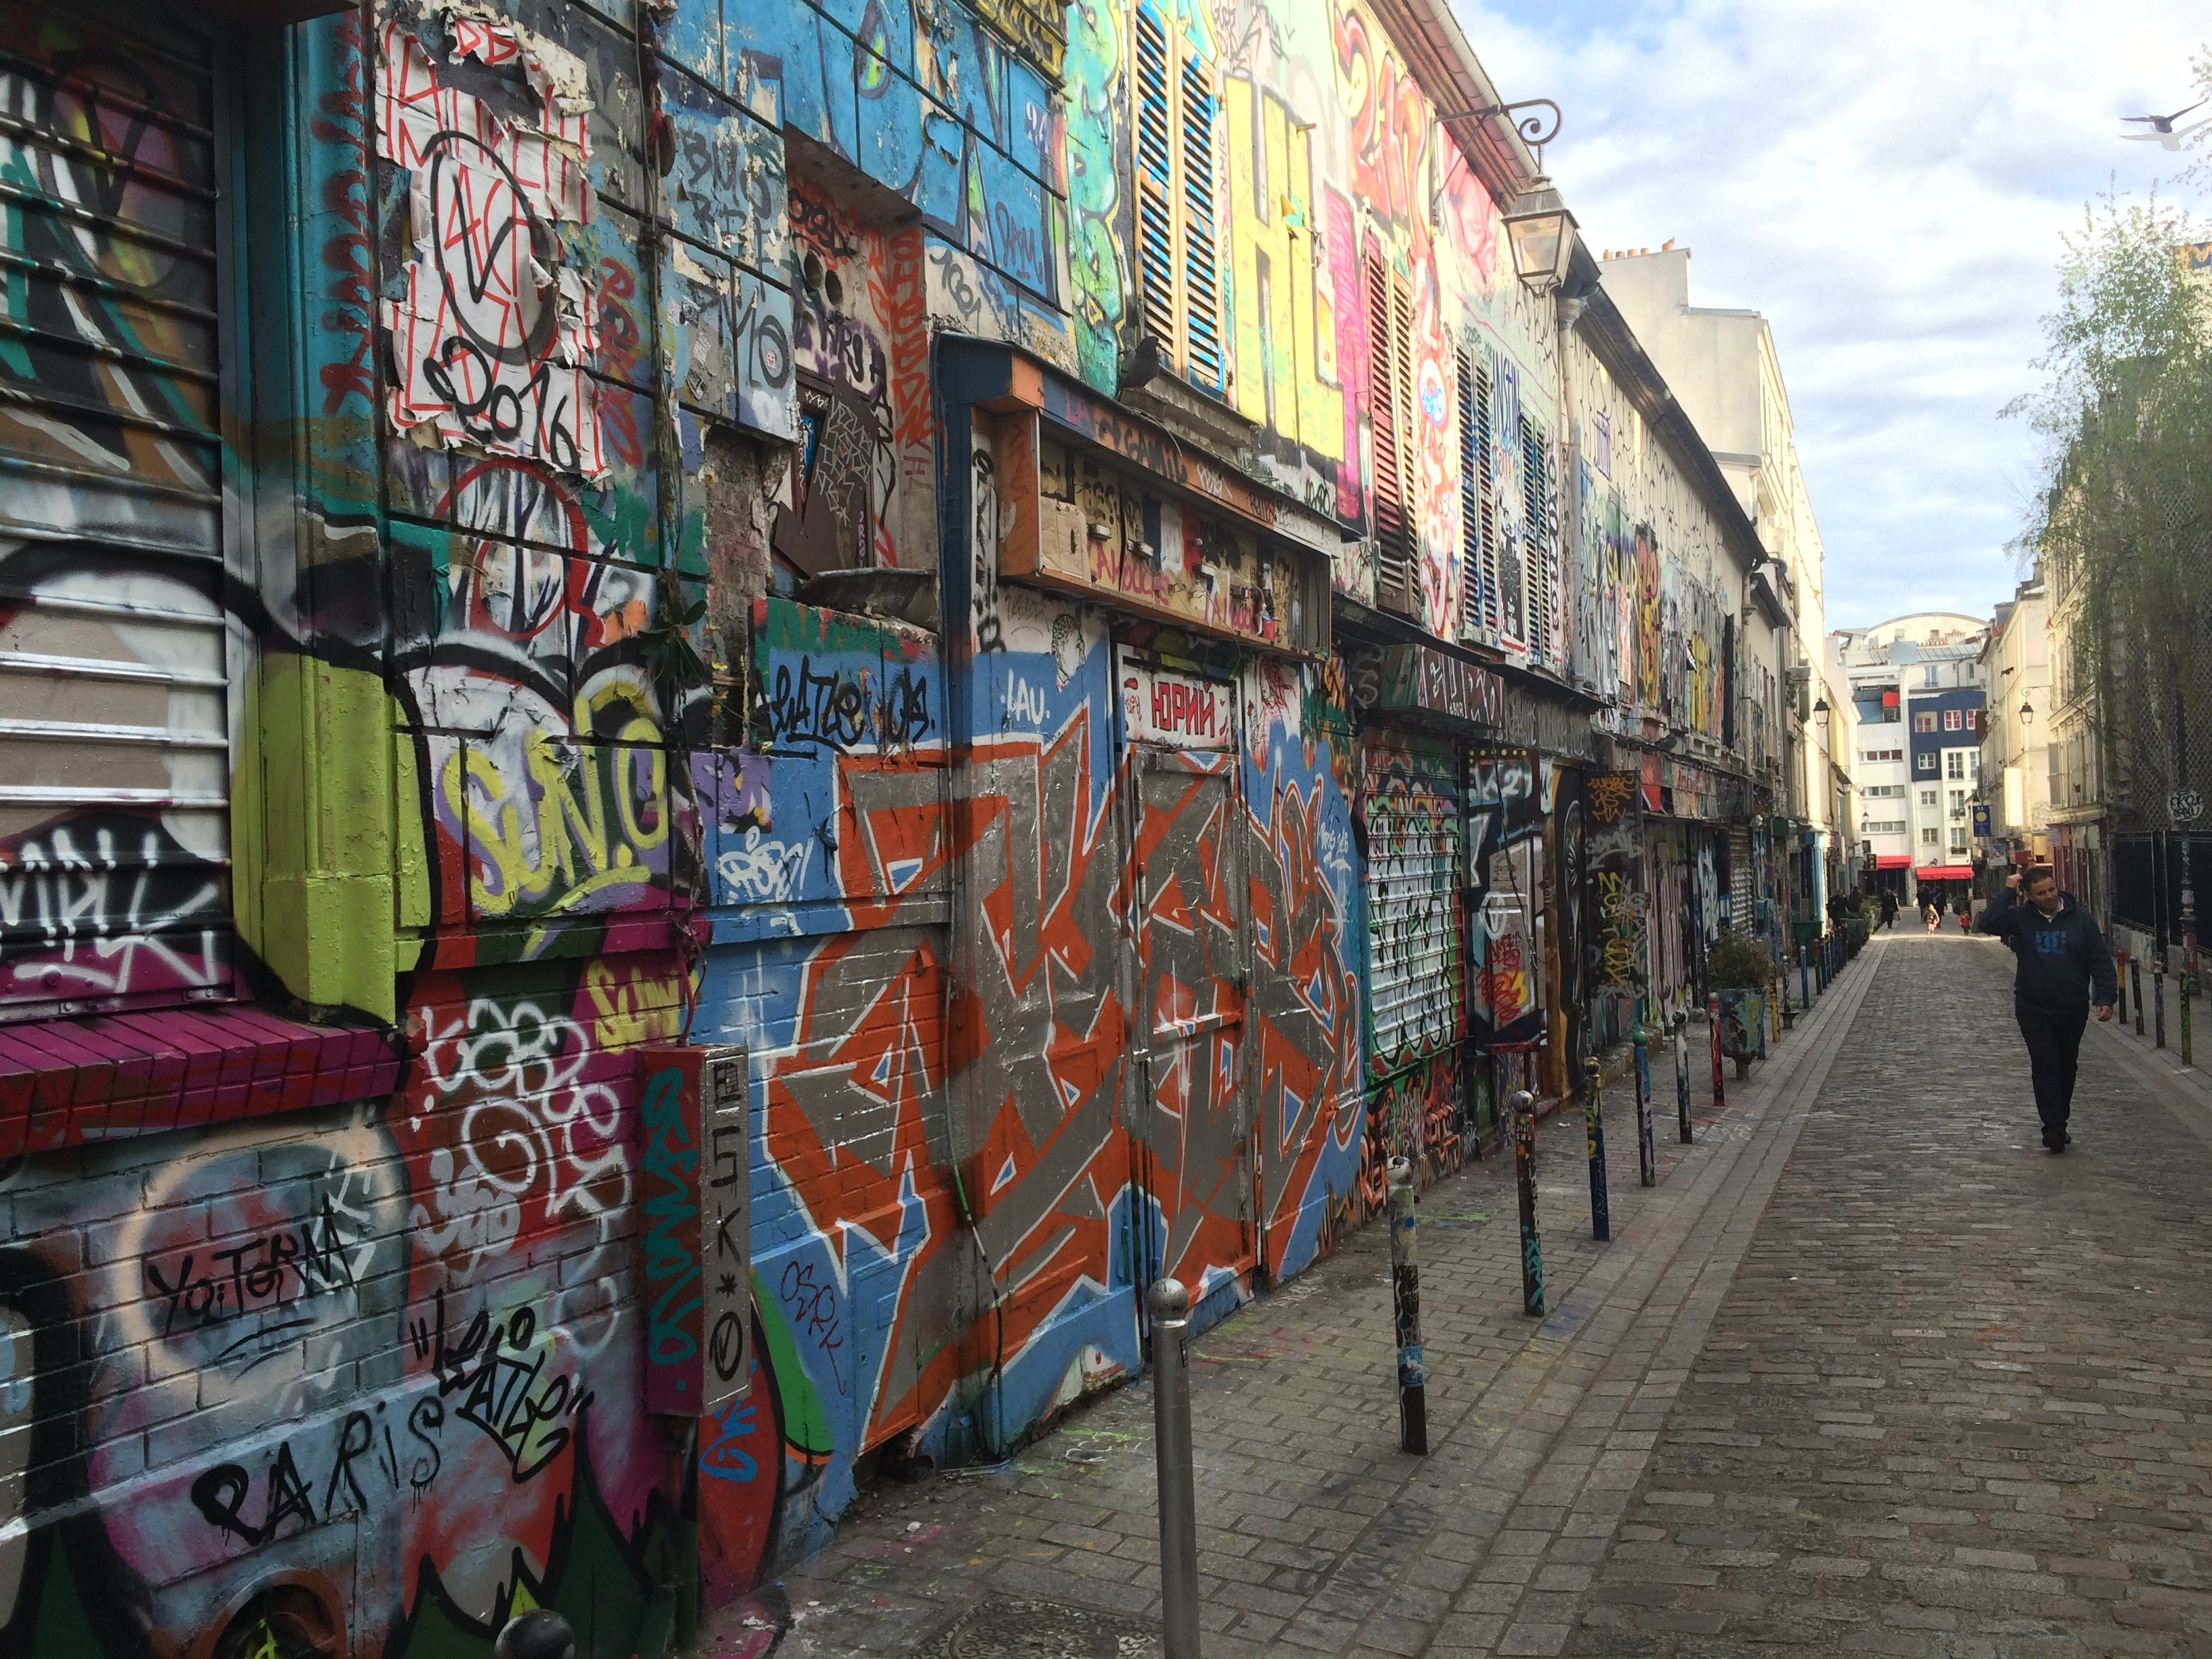 Street Art and Graffiti on Rue des Noyés in Paris